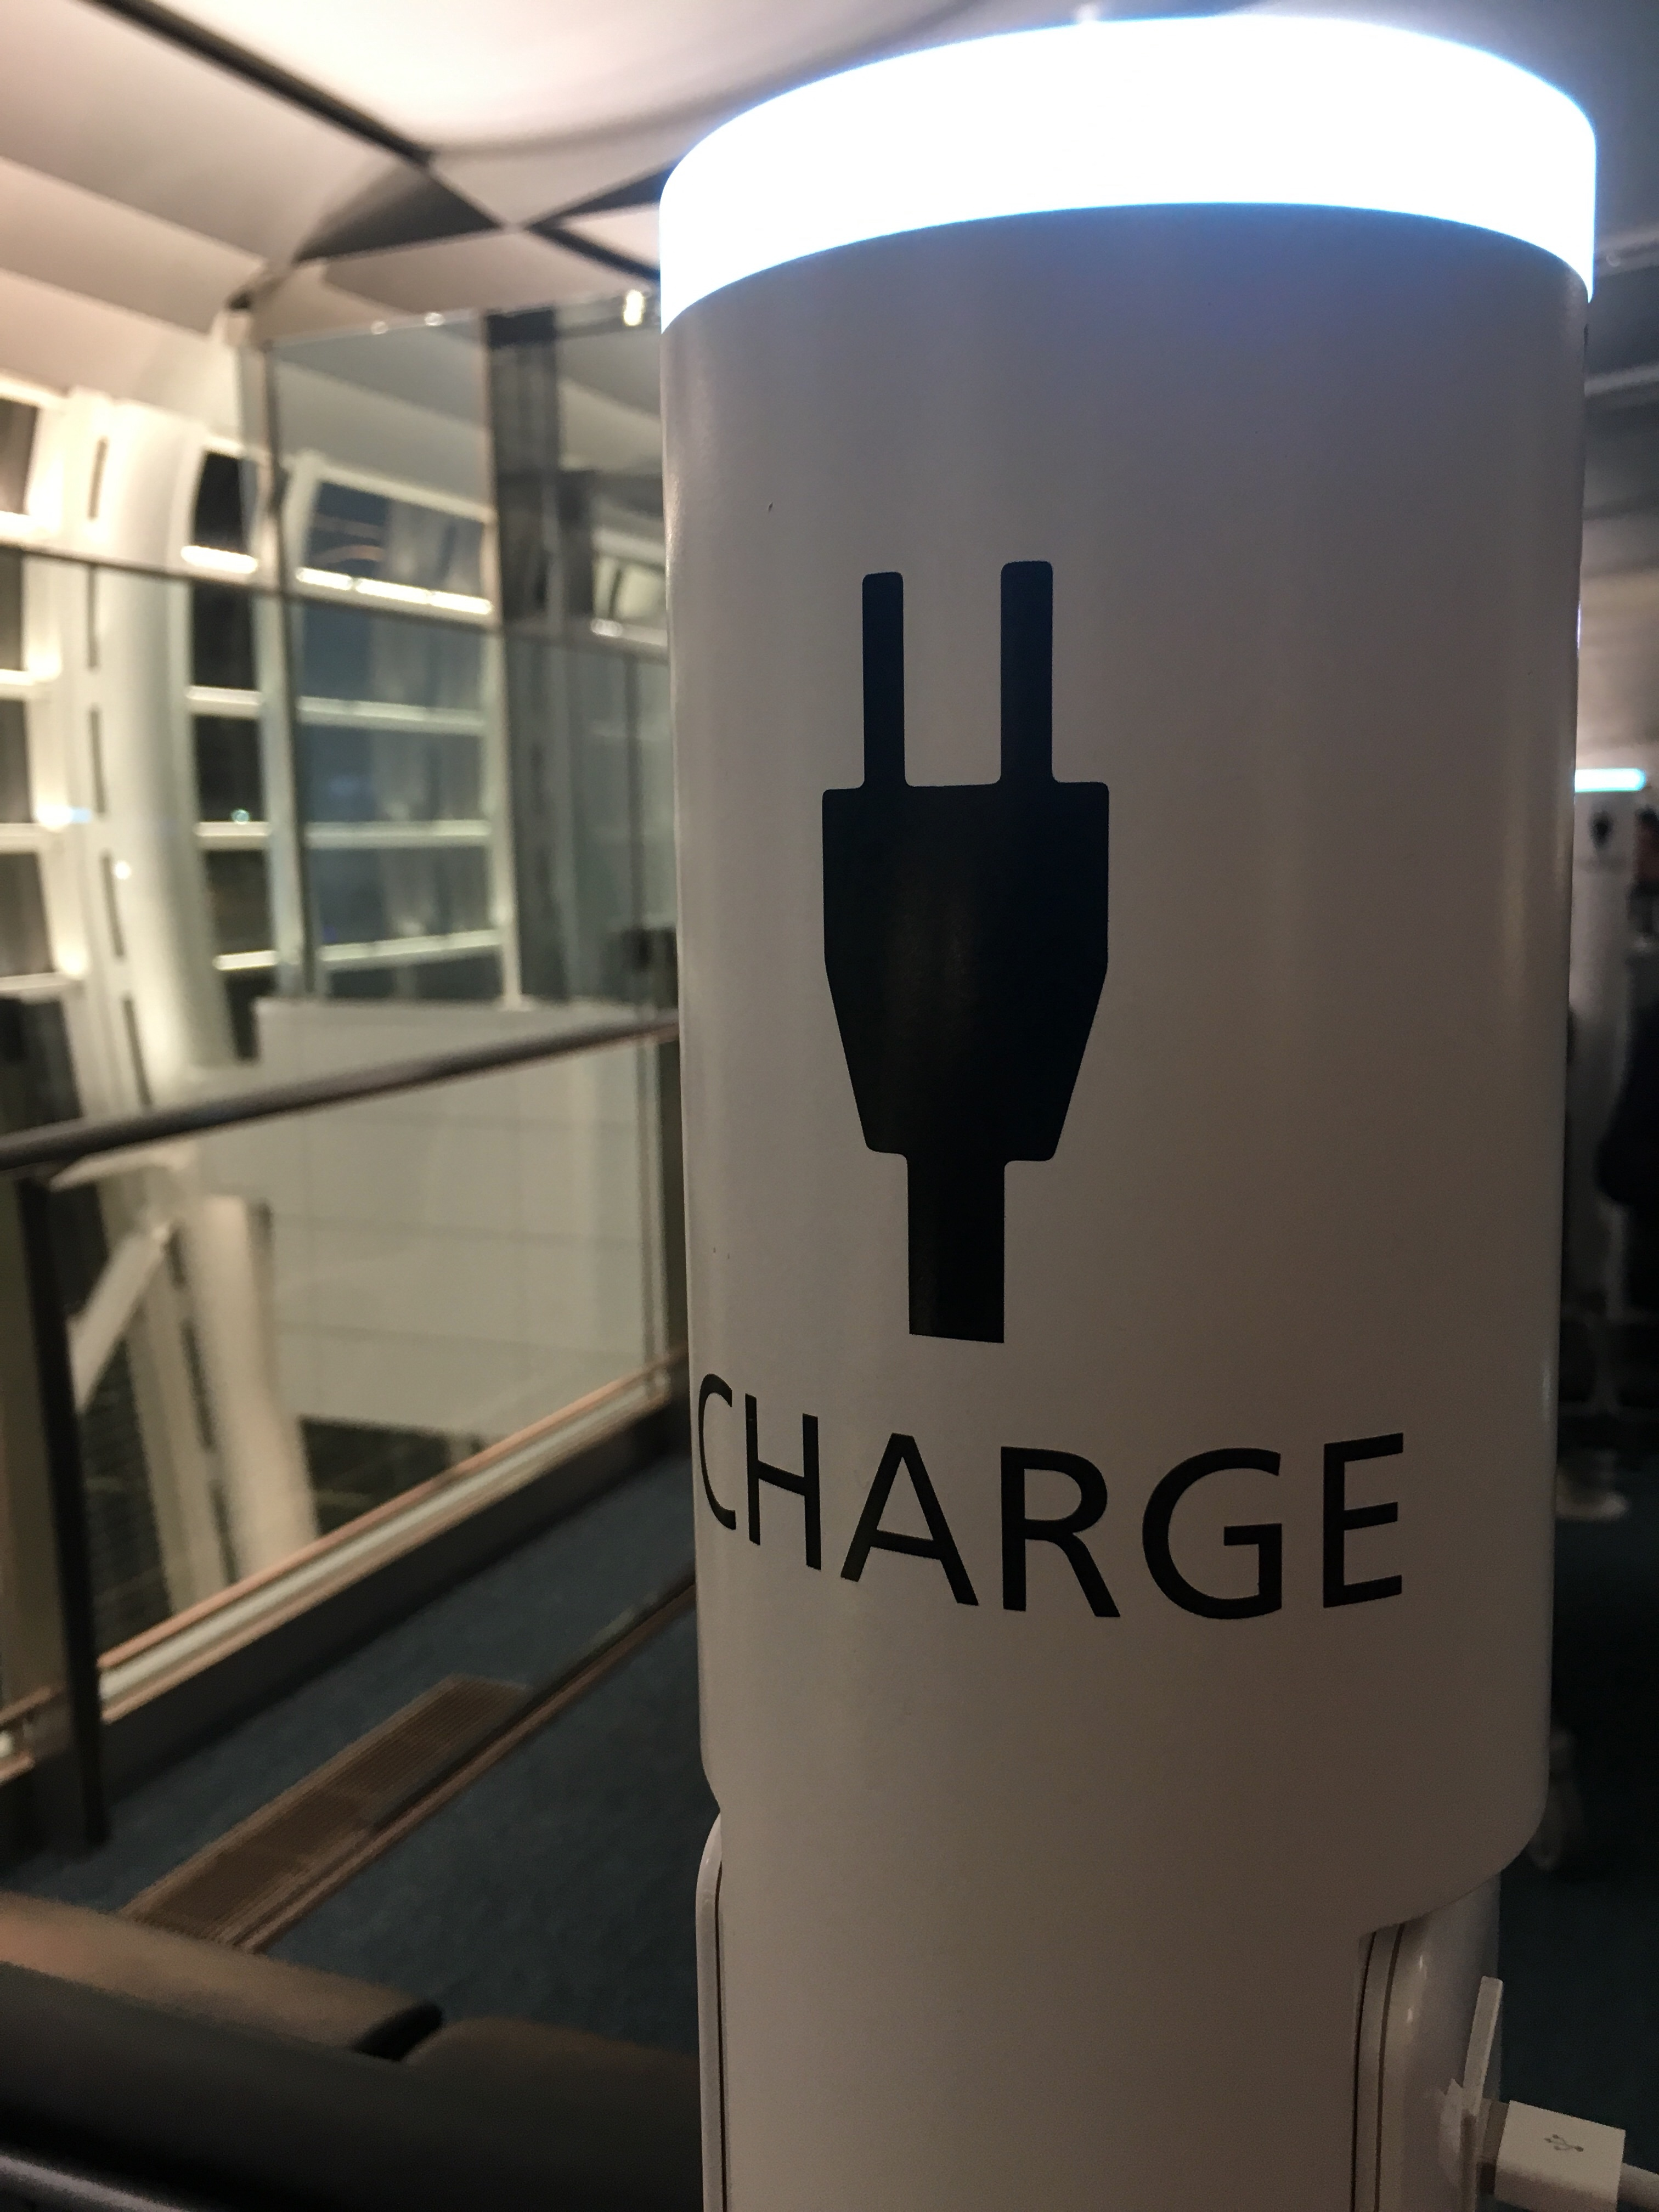 Charge here